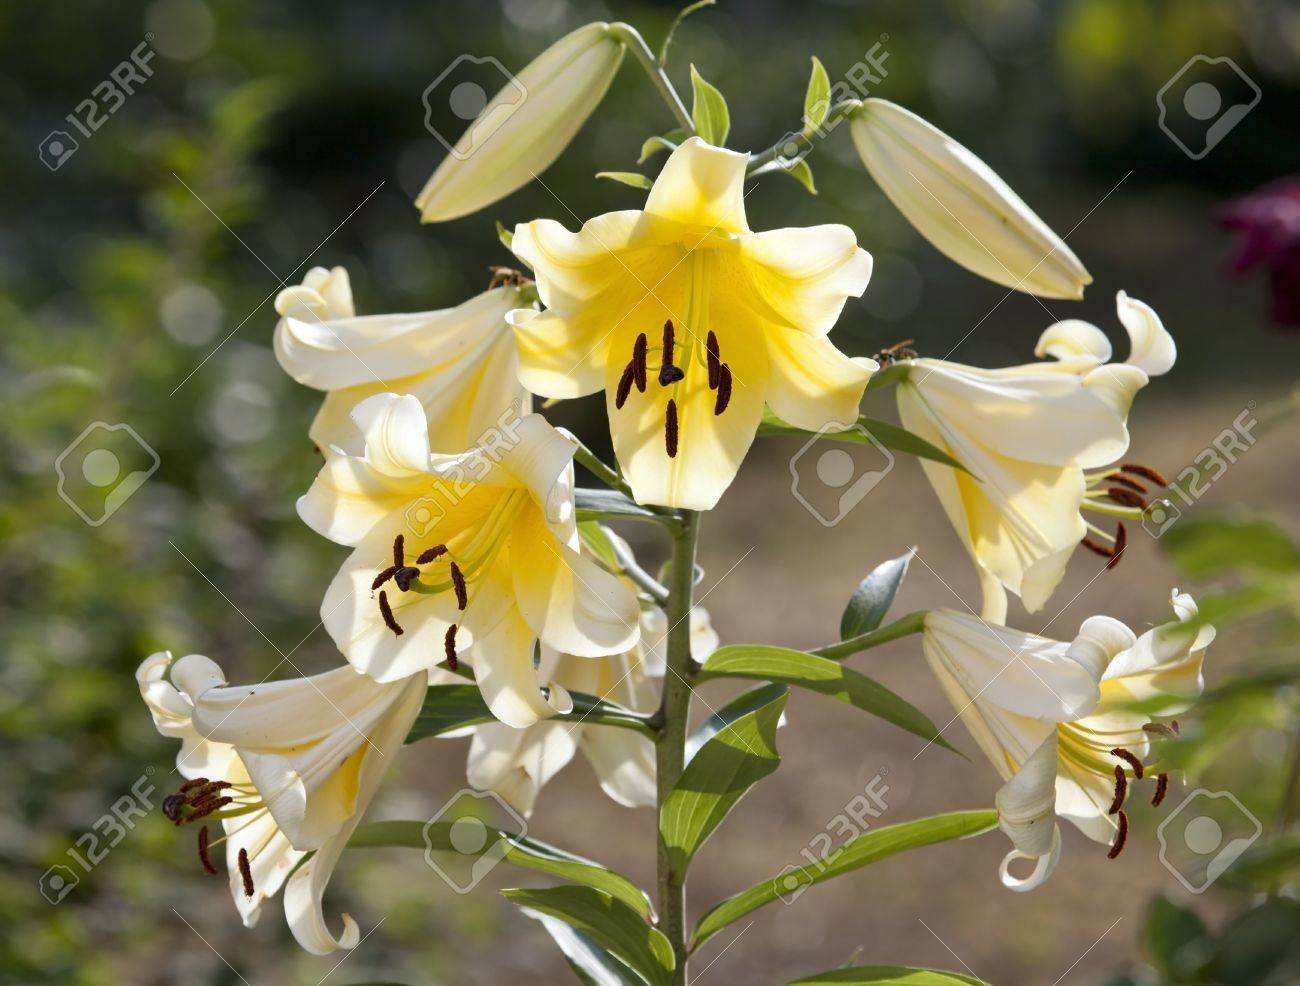 Many flowers of lily on one stem stock photo picture and royalty many flowers of lily on one stem stock photo 20630336 izmirmasajfo